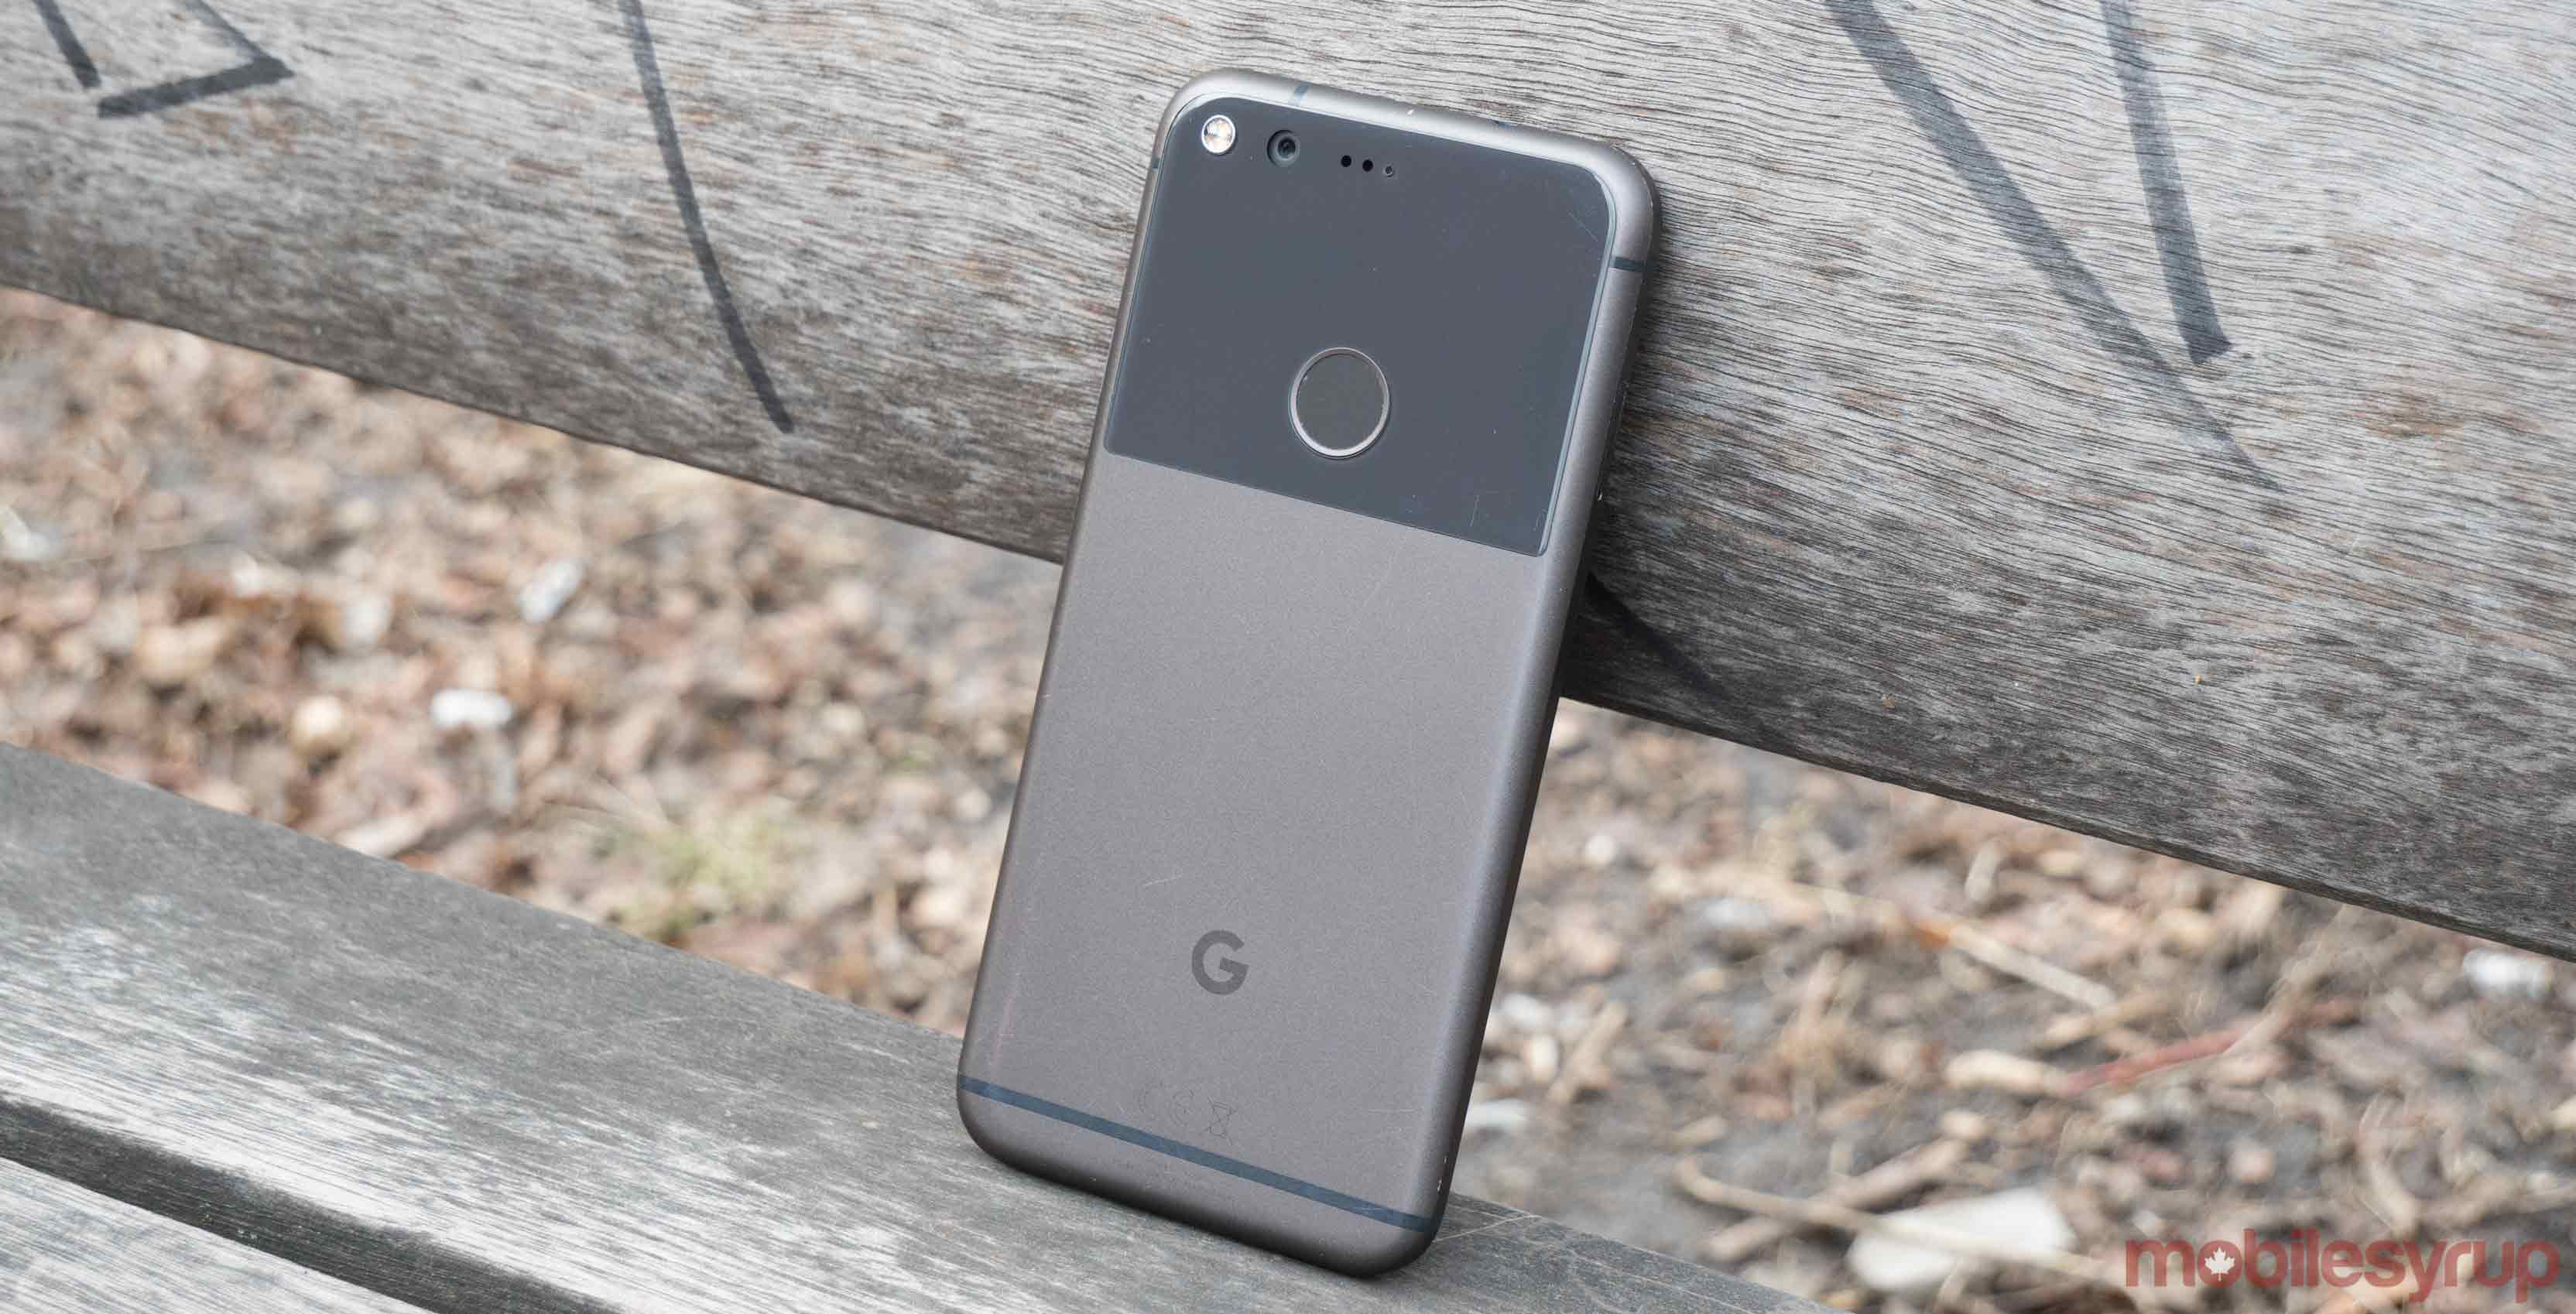 Google pixel learning against park bench - Android tethering